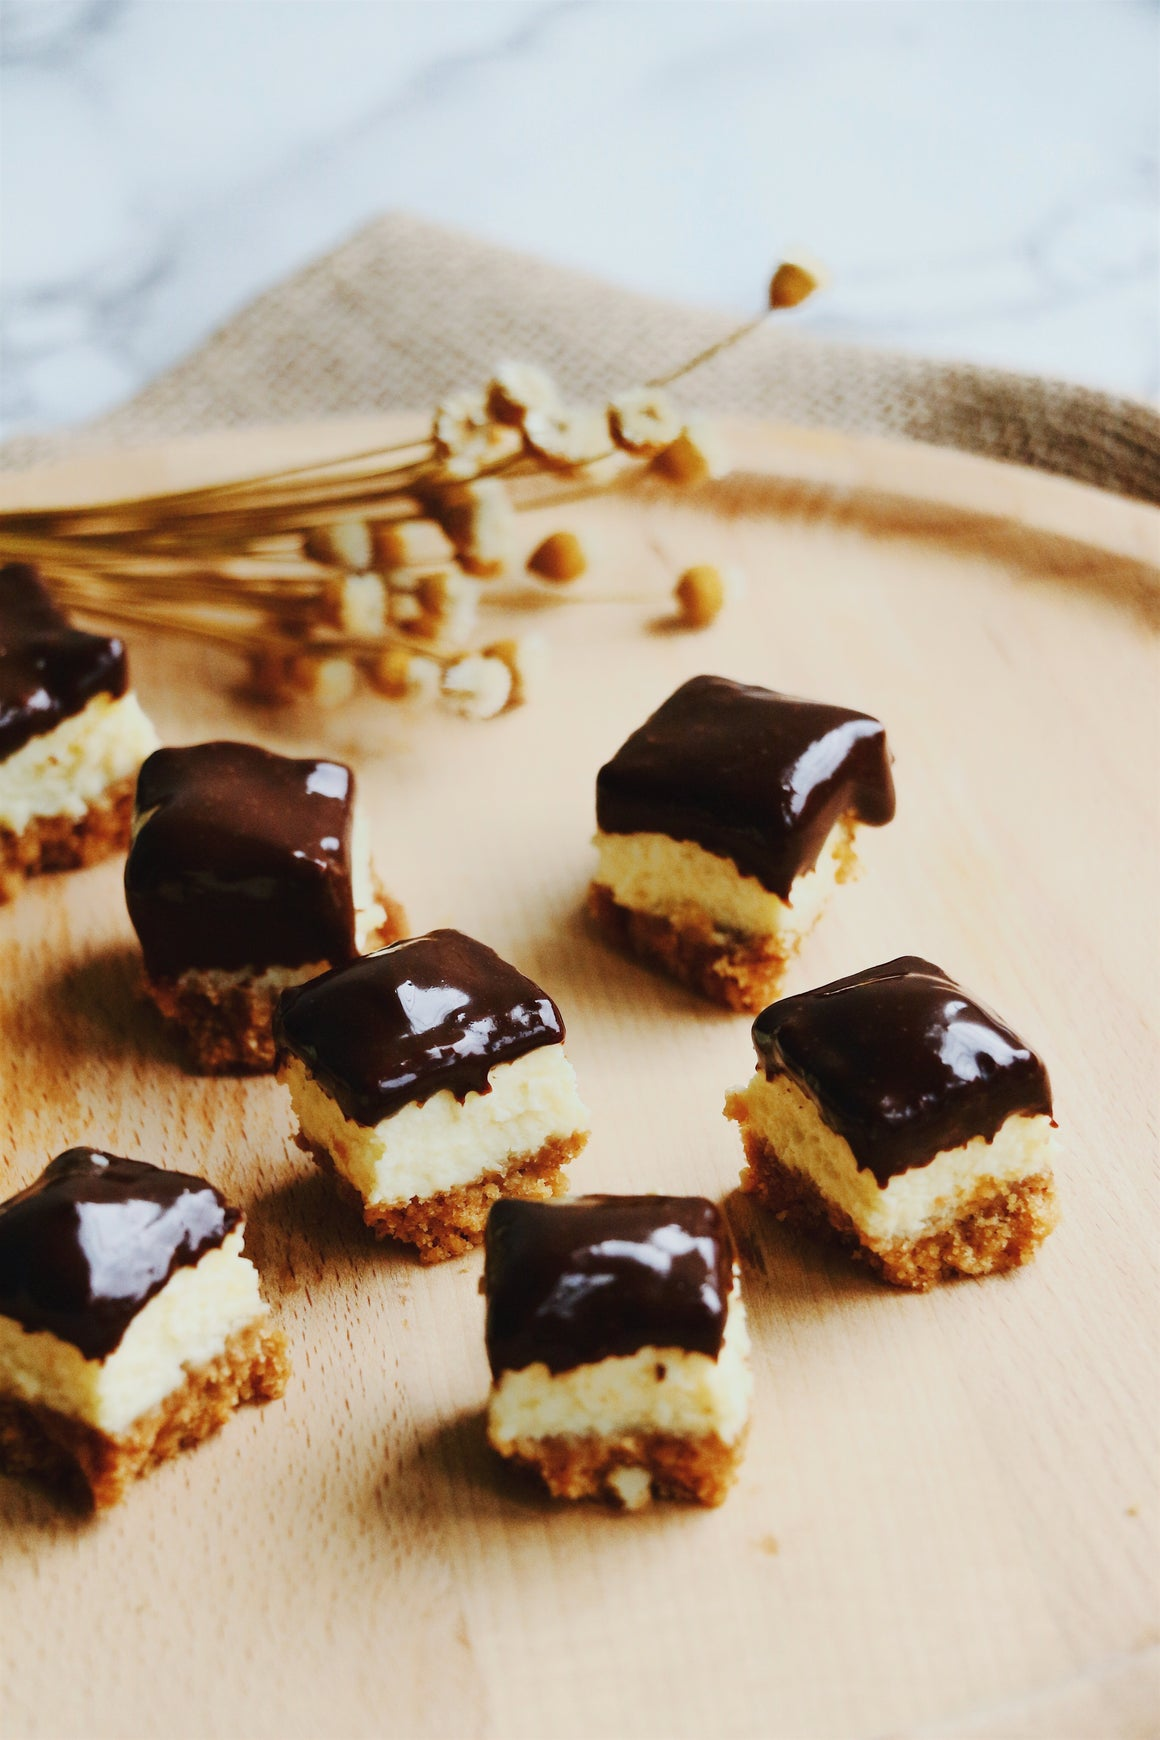 Cheesecake Bites With Dark Chocolate Ganache